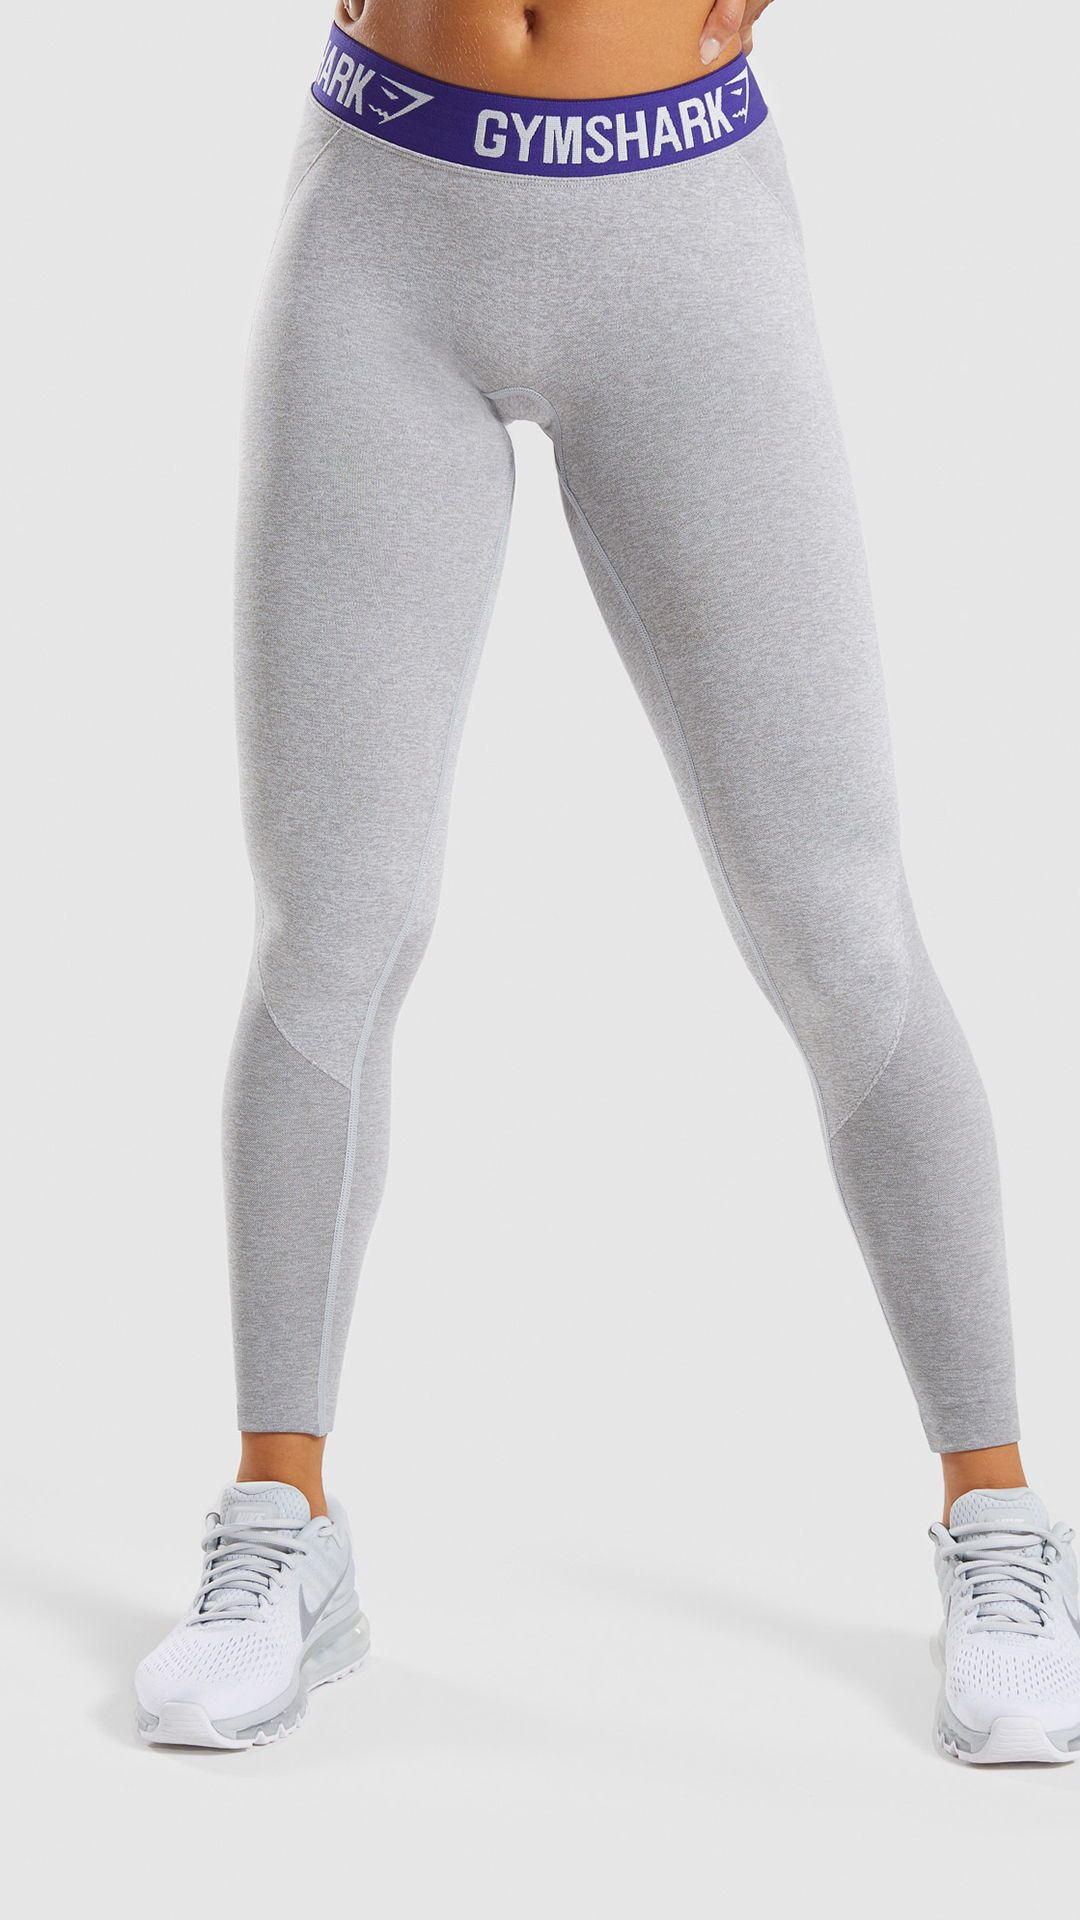 5b5e20f6e171c Gymshark Flex Leggings - Light Grey Marl/Indigo in 2019 | christmas ...